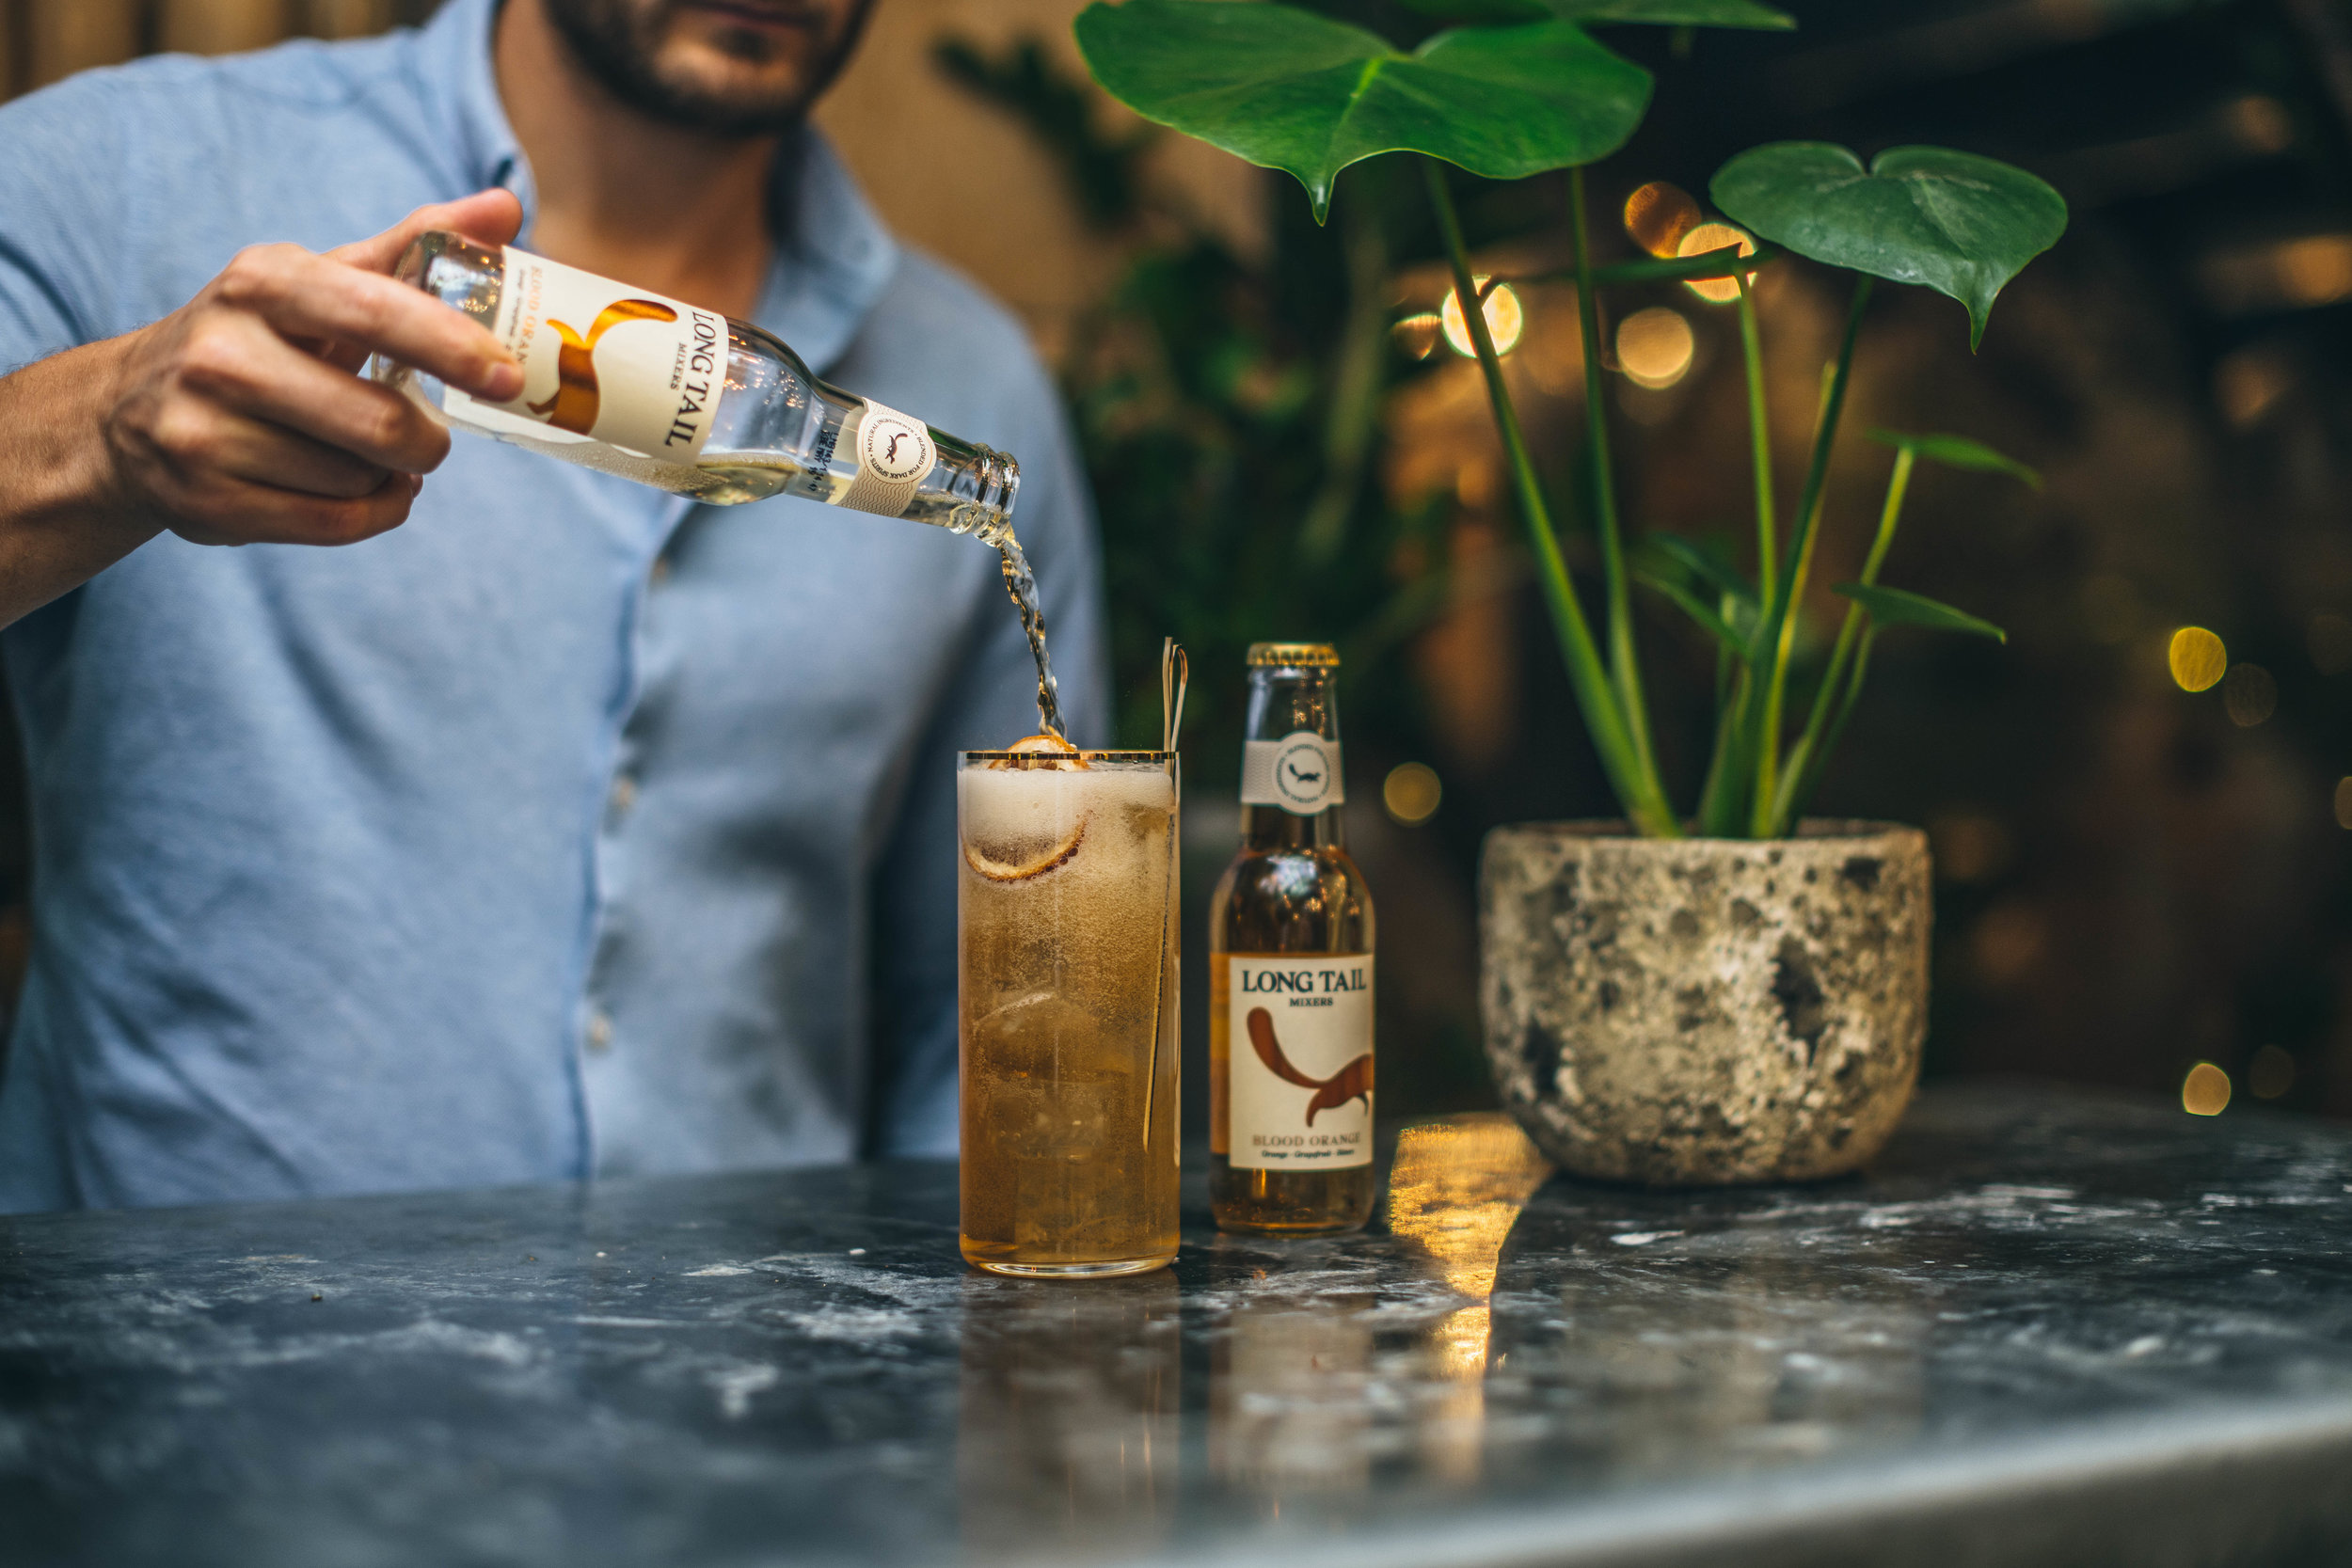 Imbibe.com - Mixers get fancy: Premiumisation in whisky and rum drives dark-spirit mixer growth…read more